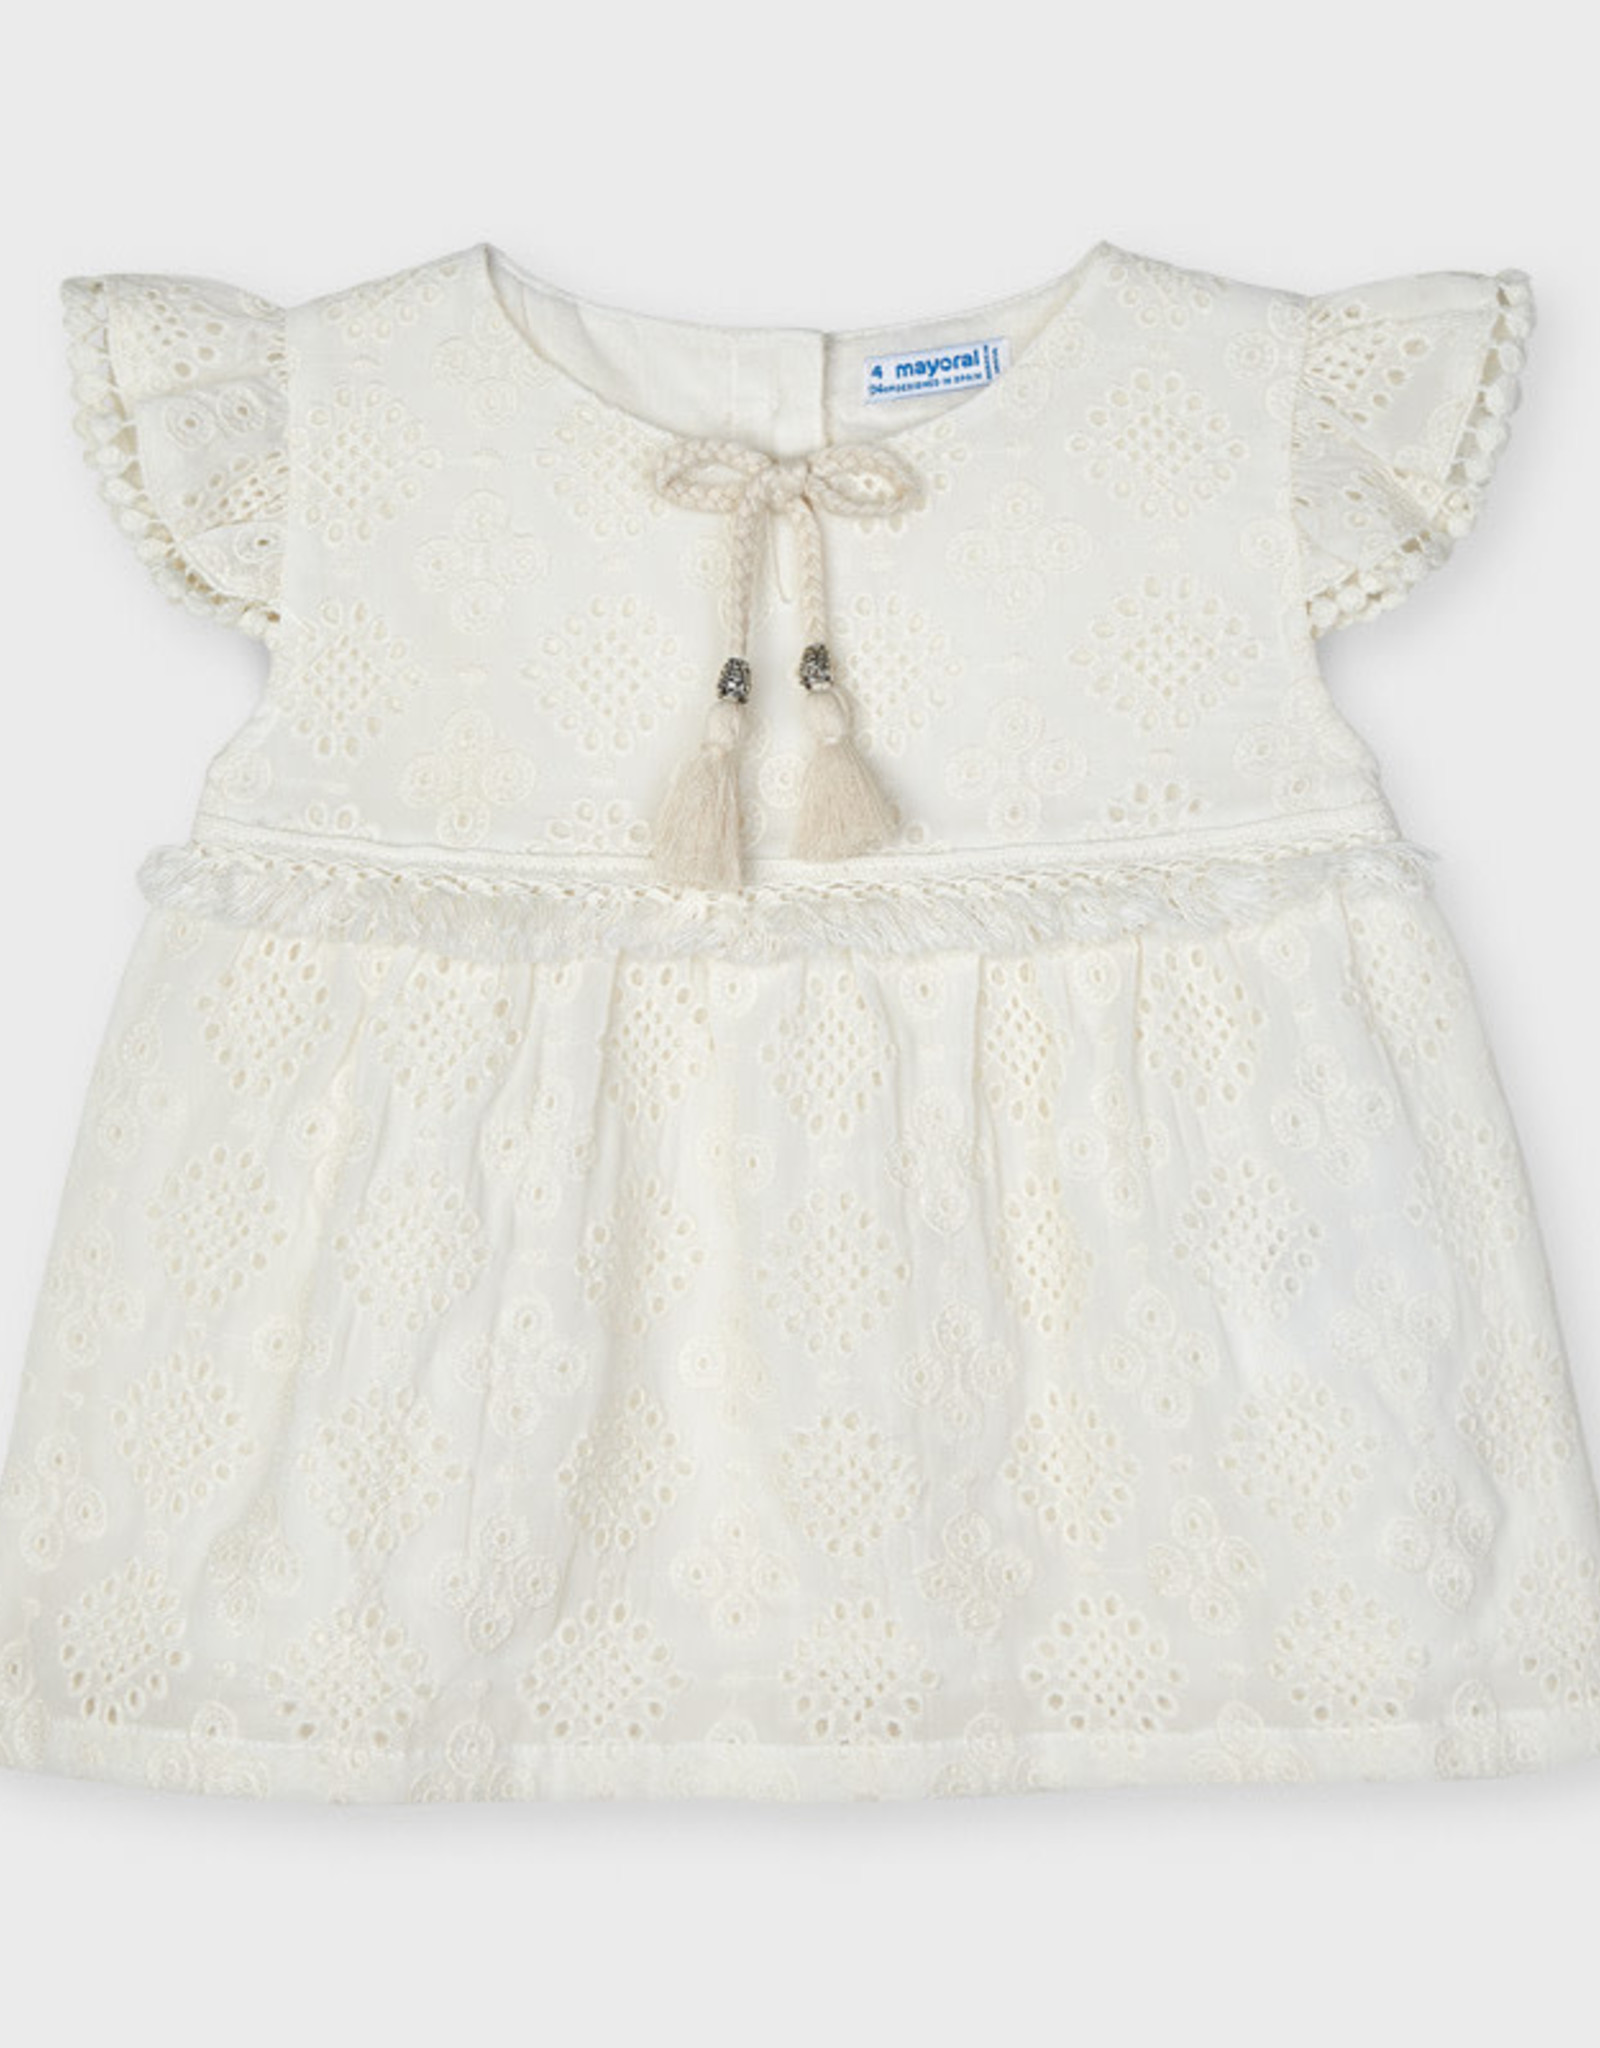 Mayoral Mayoral Girl Embroidered Chiffon Blouse